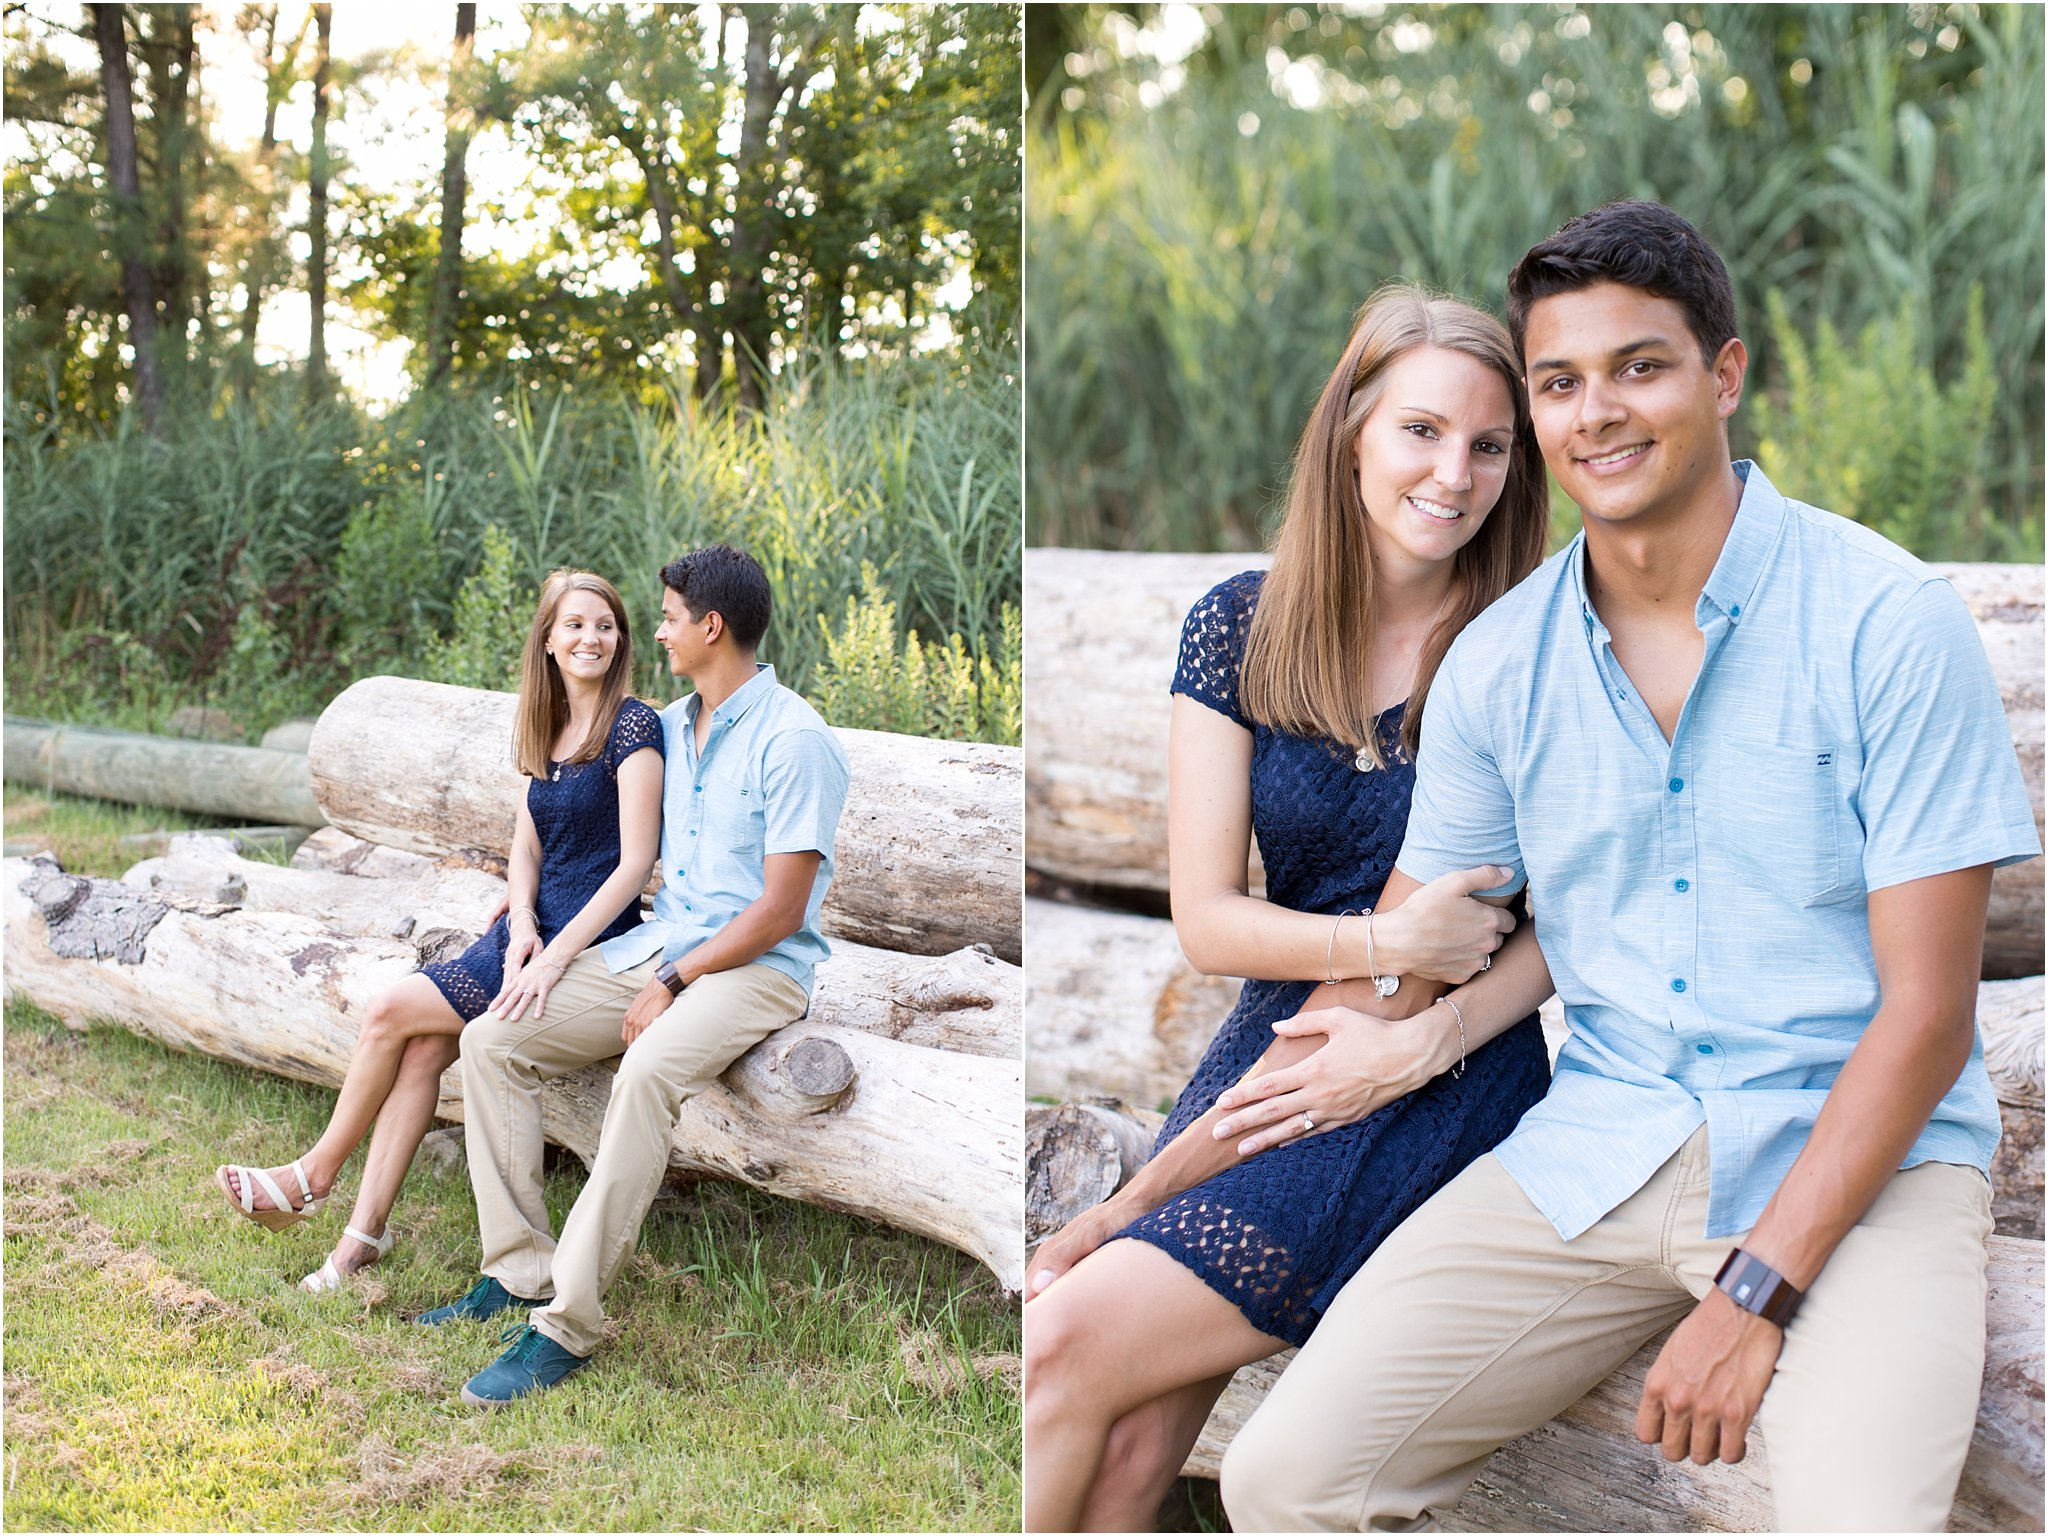 jessica_ryan_photography_virginia_virginia_beach_engagement_portraits_candid_authentic_engagements_pungo_country_farm_2760